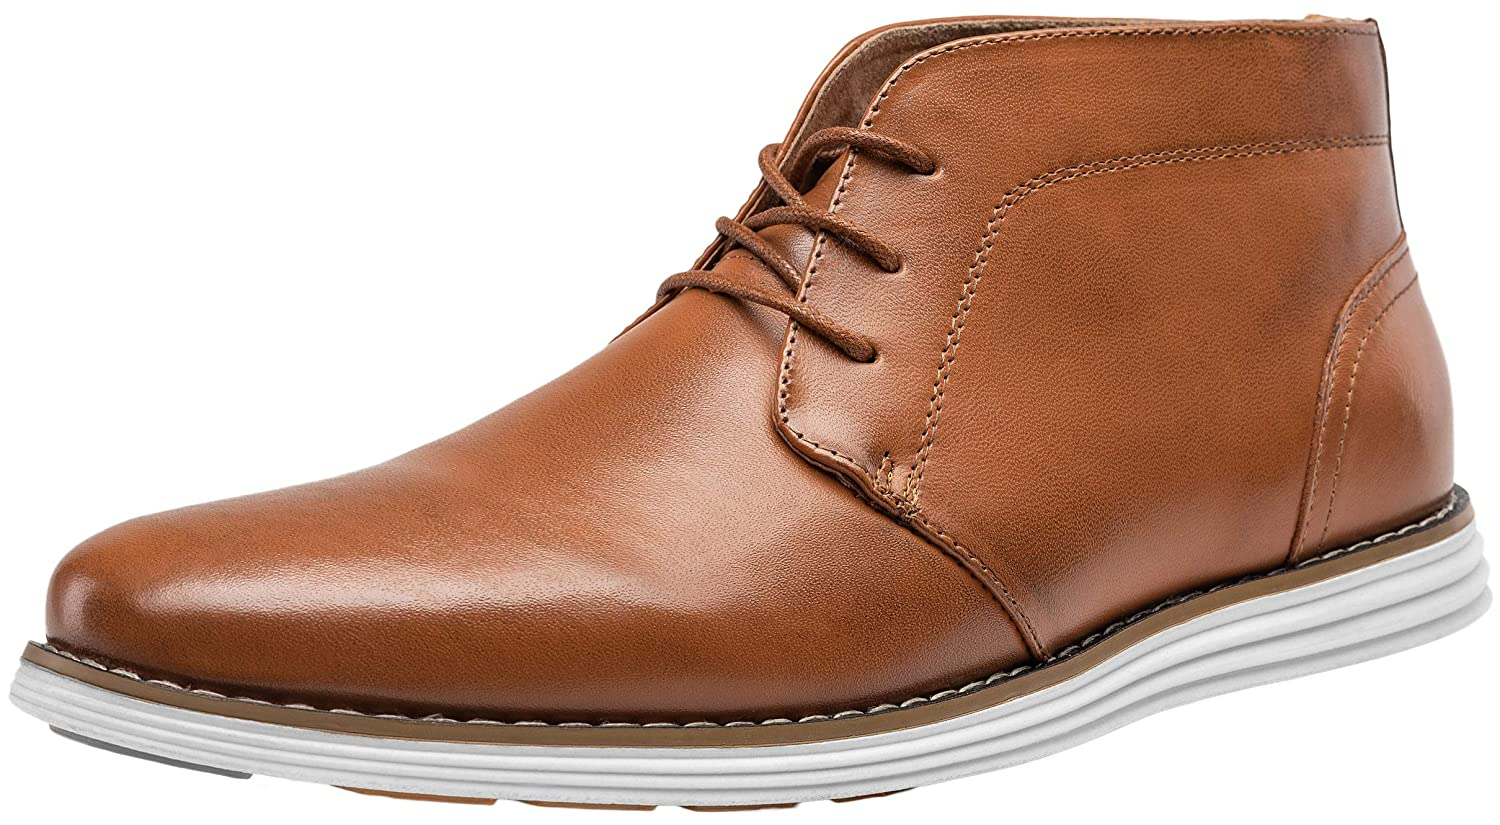 ab5b520fb62 JOUSEN Men's Chukka Boot Casual Ankle Boot Leather High Top Boot